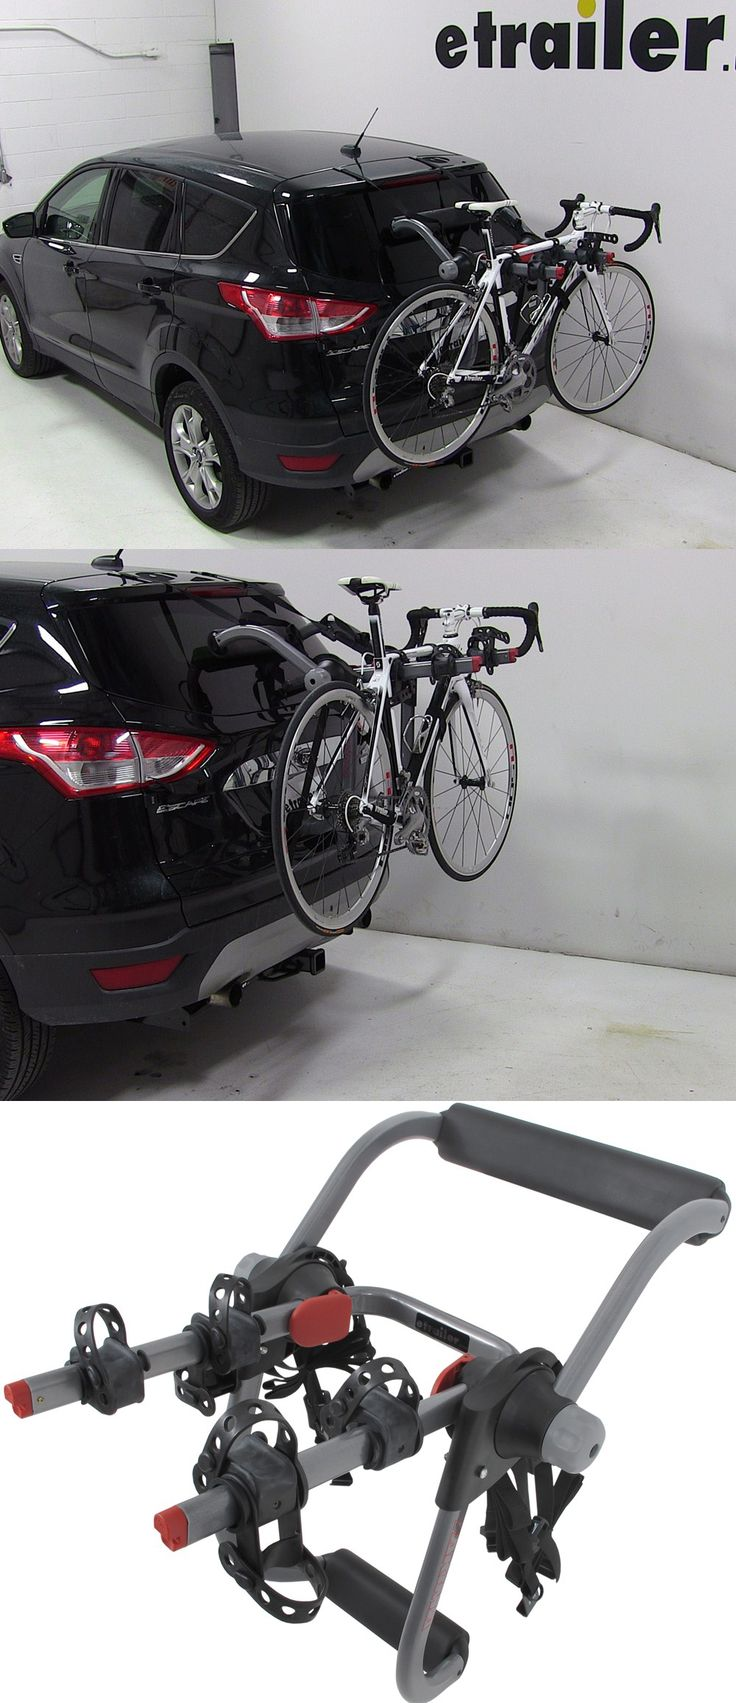 The Yakima KingJoe Pro 2 Bike Rack - Folding Arms - compatible with the Ford Escape and is perfect for hatchbacks, sedans, SUVs and features a six strap system. Get your bikes to and from the biking destination safely and securely!